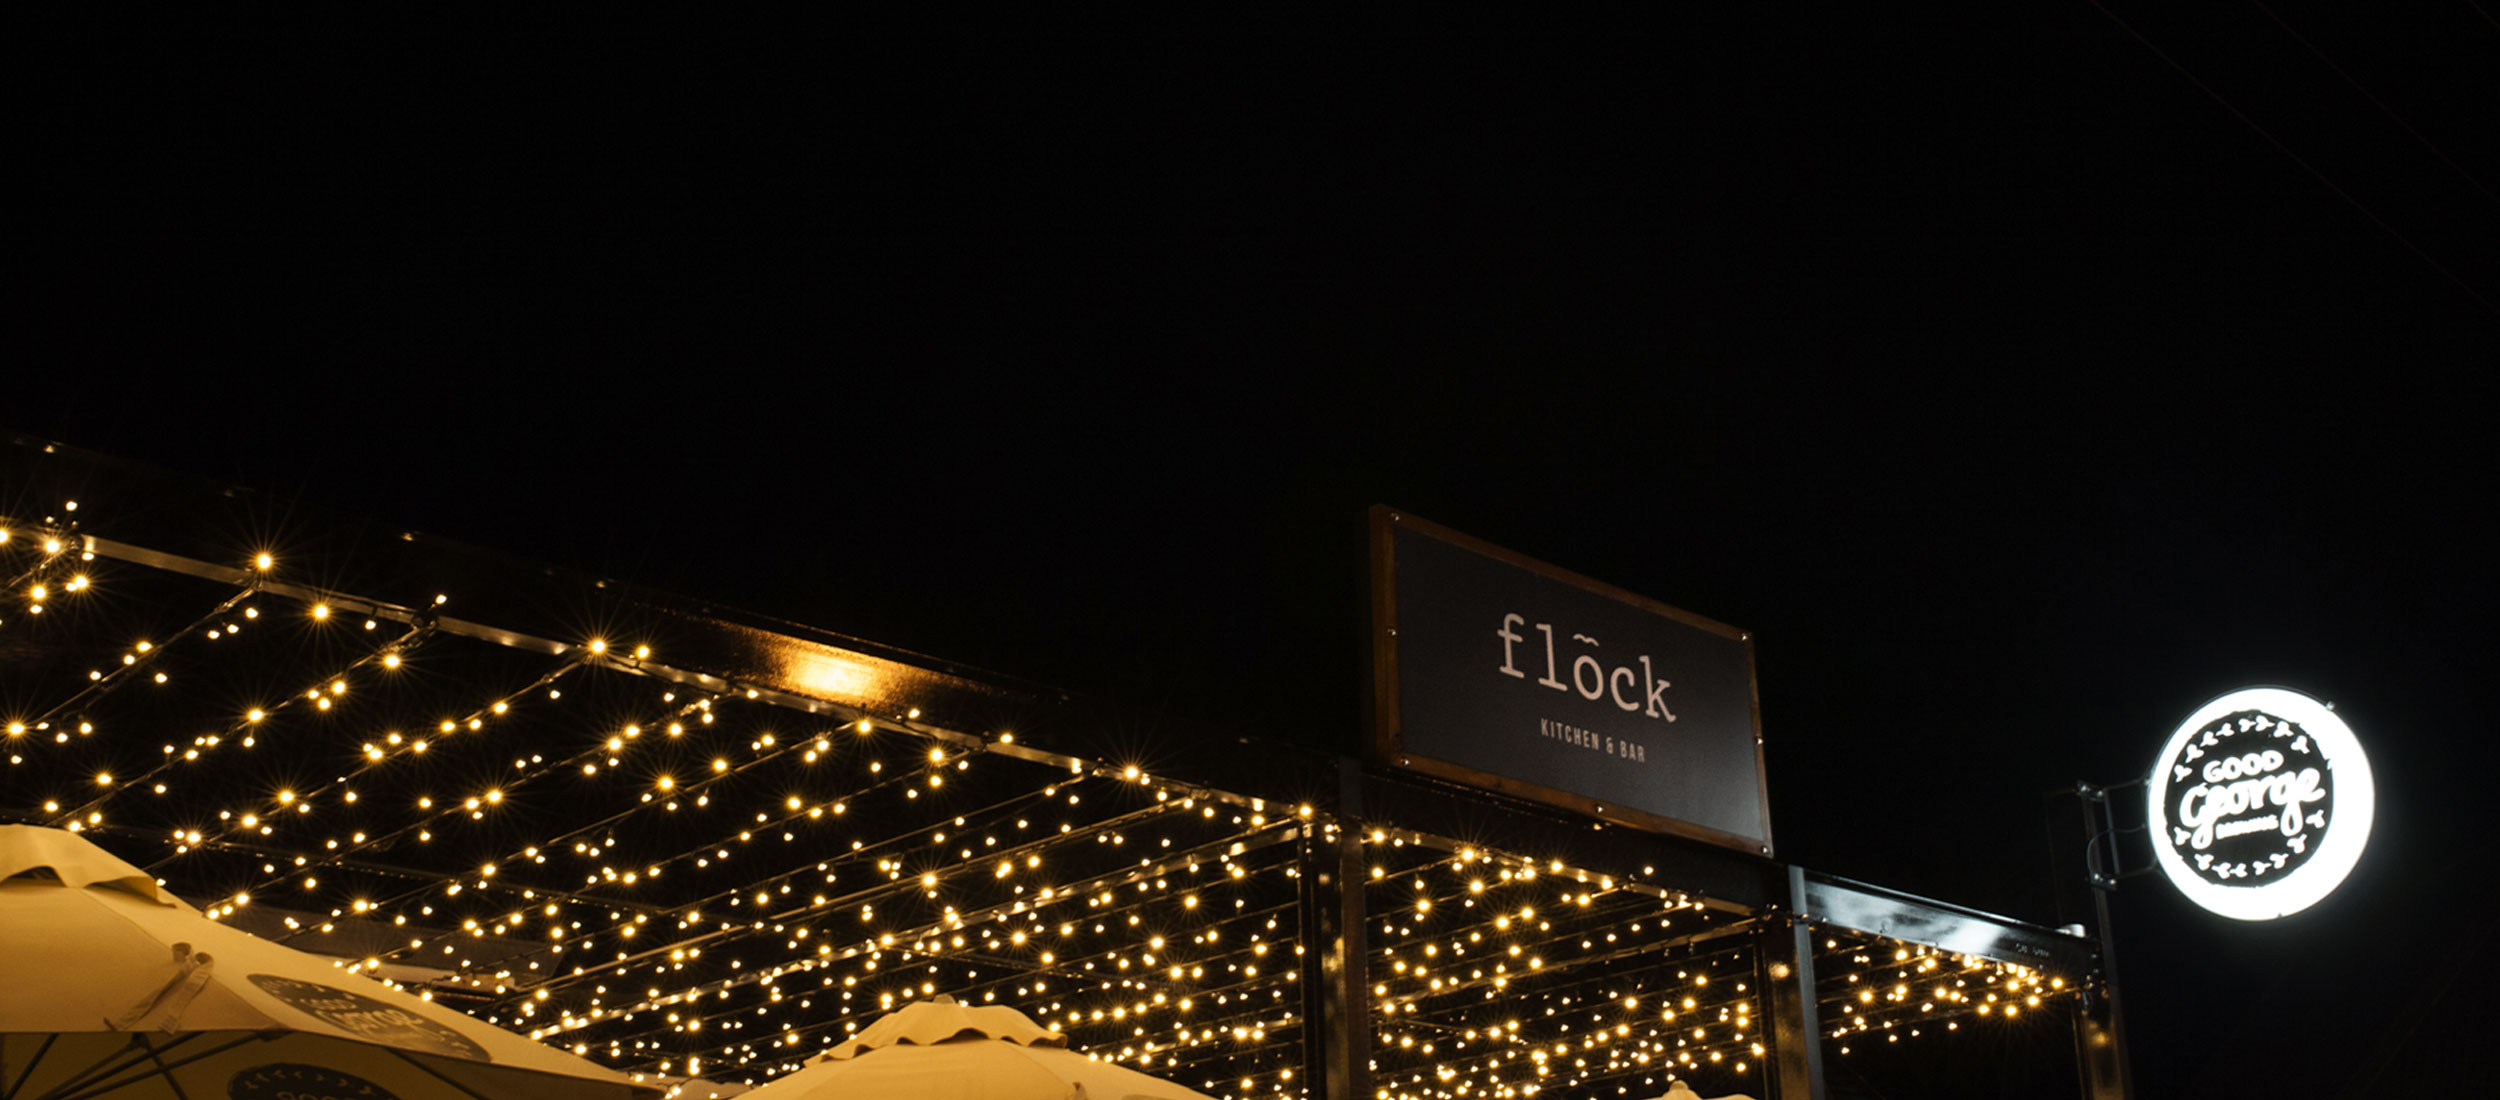 FLOCK-NIGHT-NEW.jpg